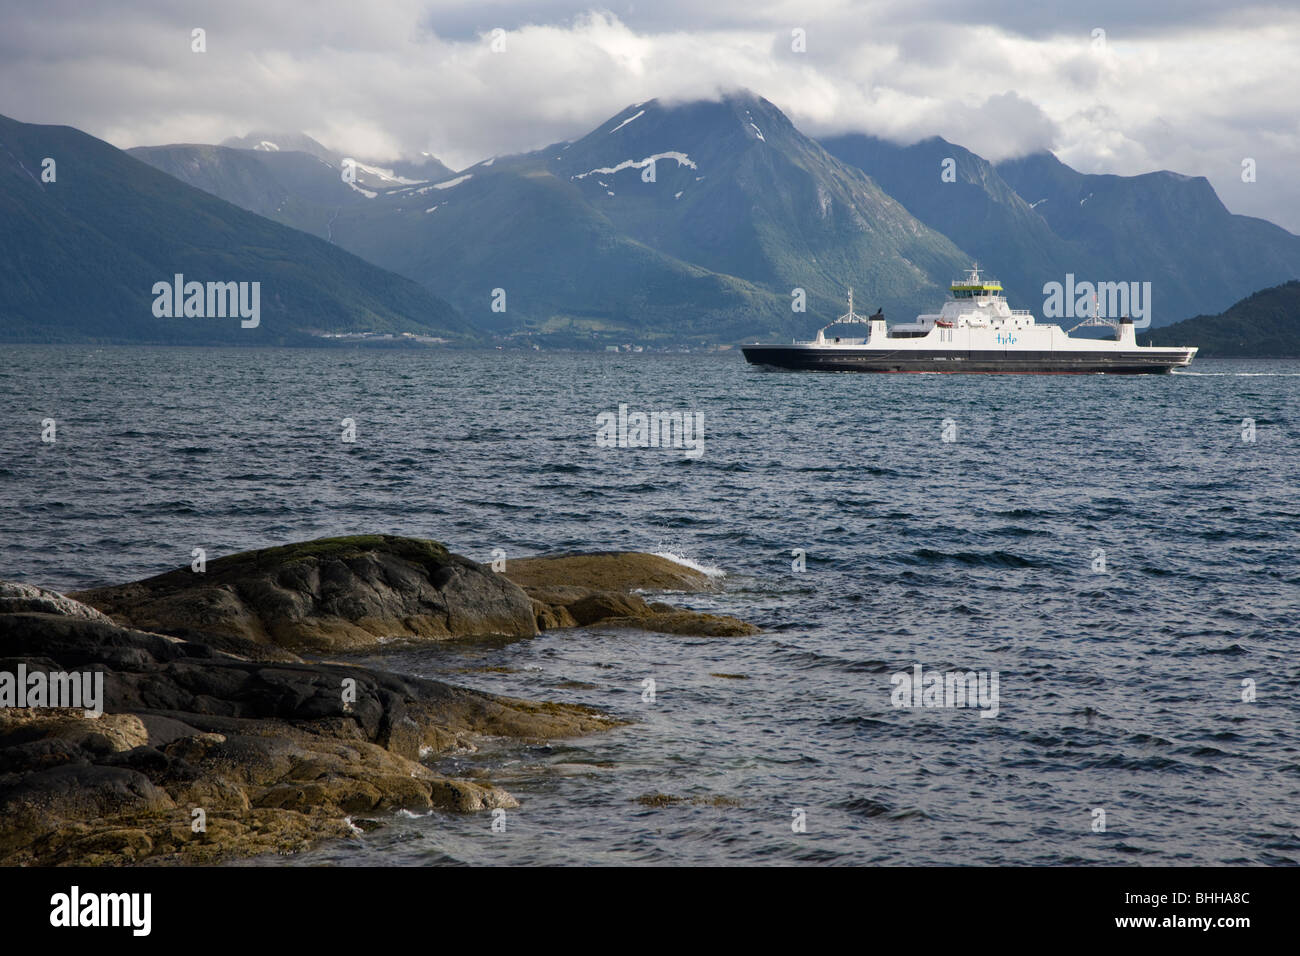 A ferry on a fiord in Norway. - Stock Image